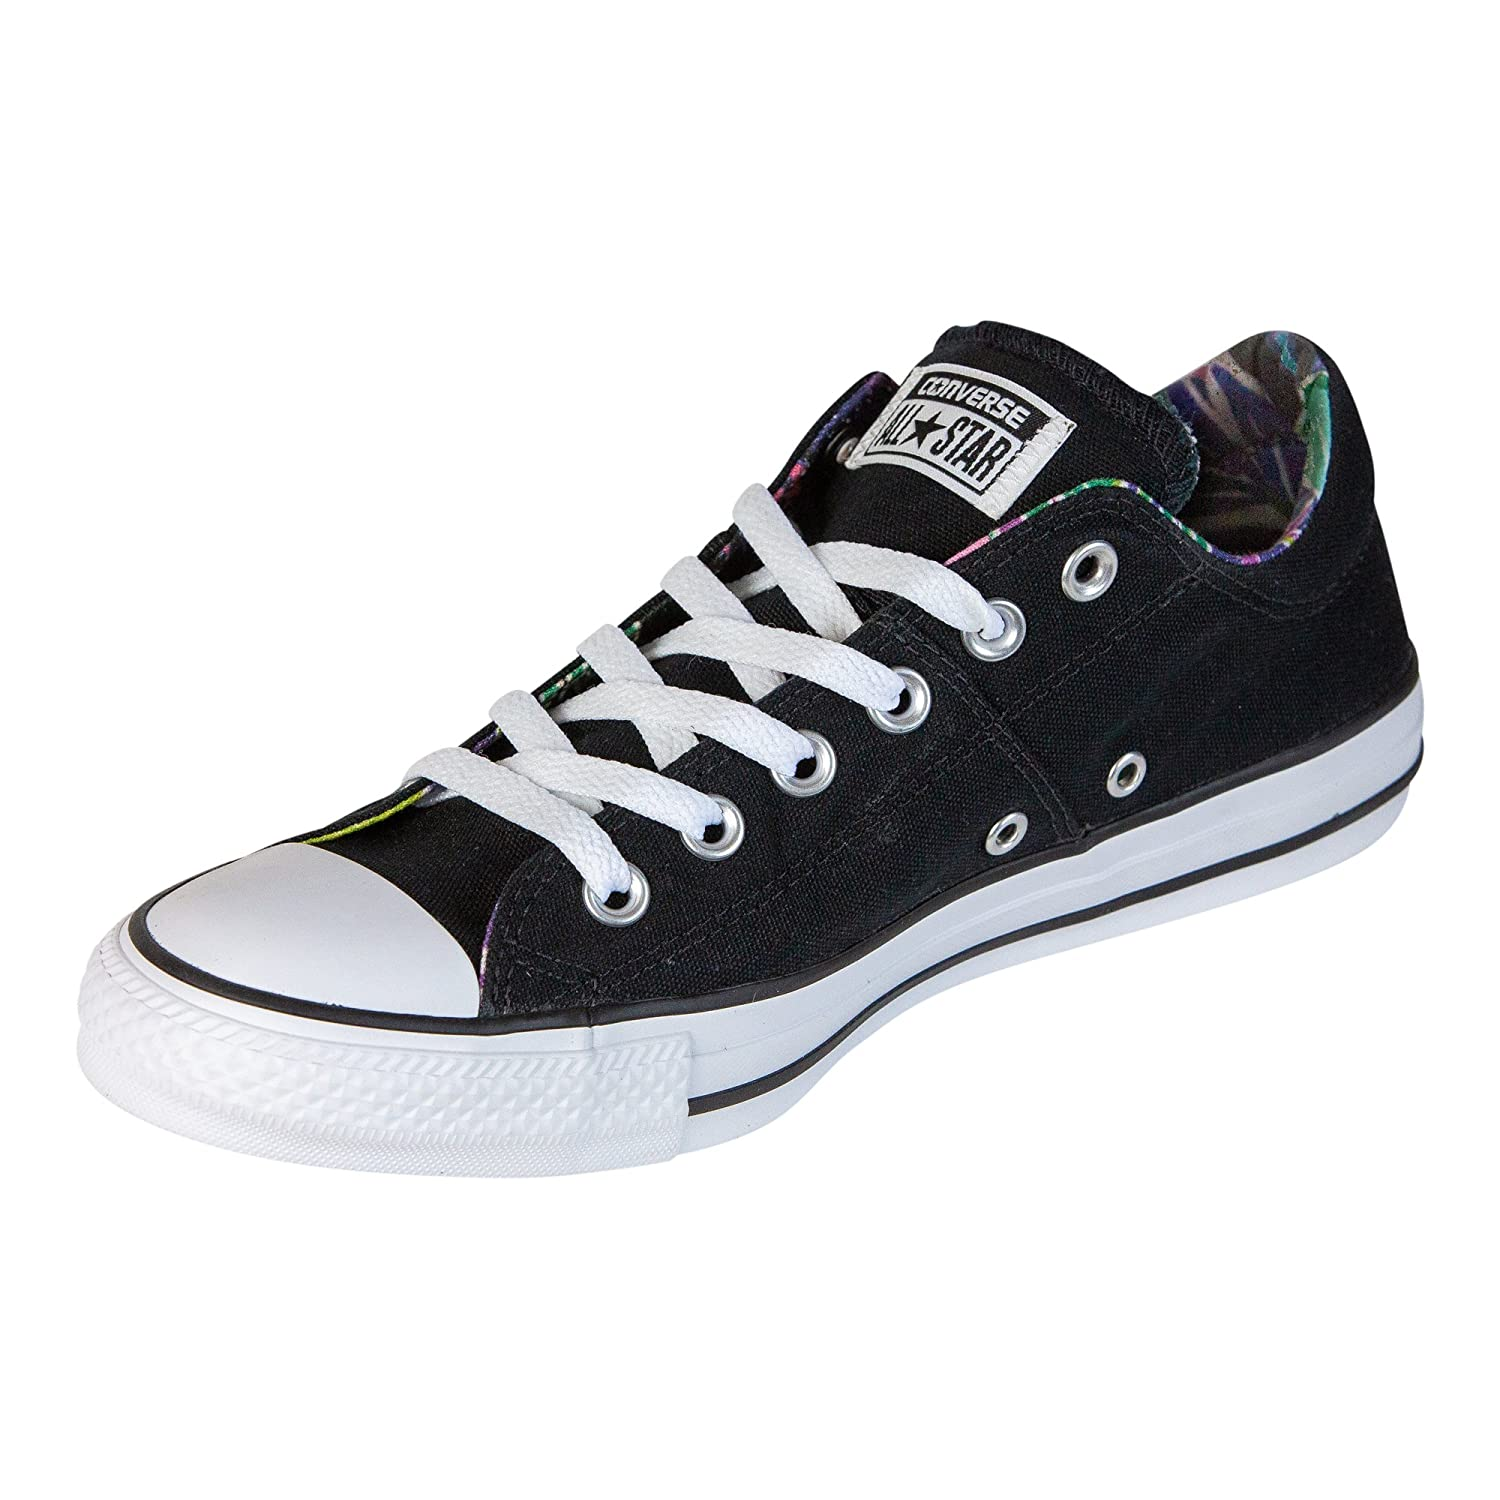 Converse Womens Chuck Taylor All Star Madison Sneaker B07FMZM52F 8 B(M) US|Black/White/White